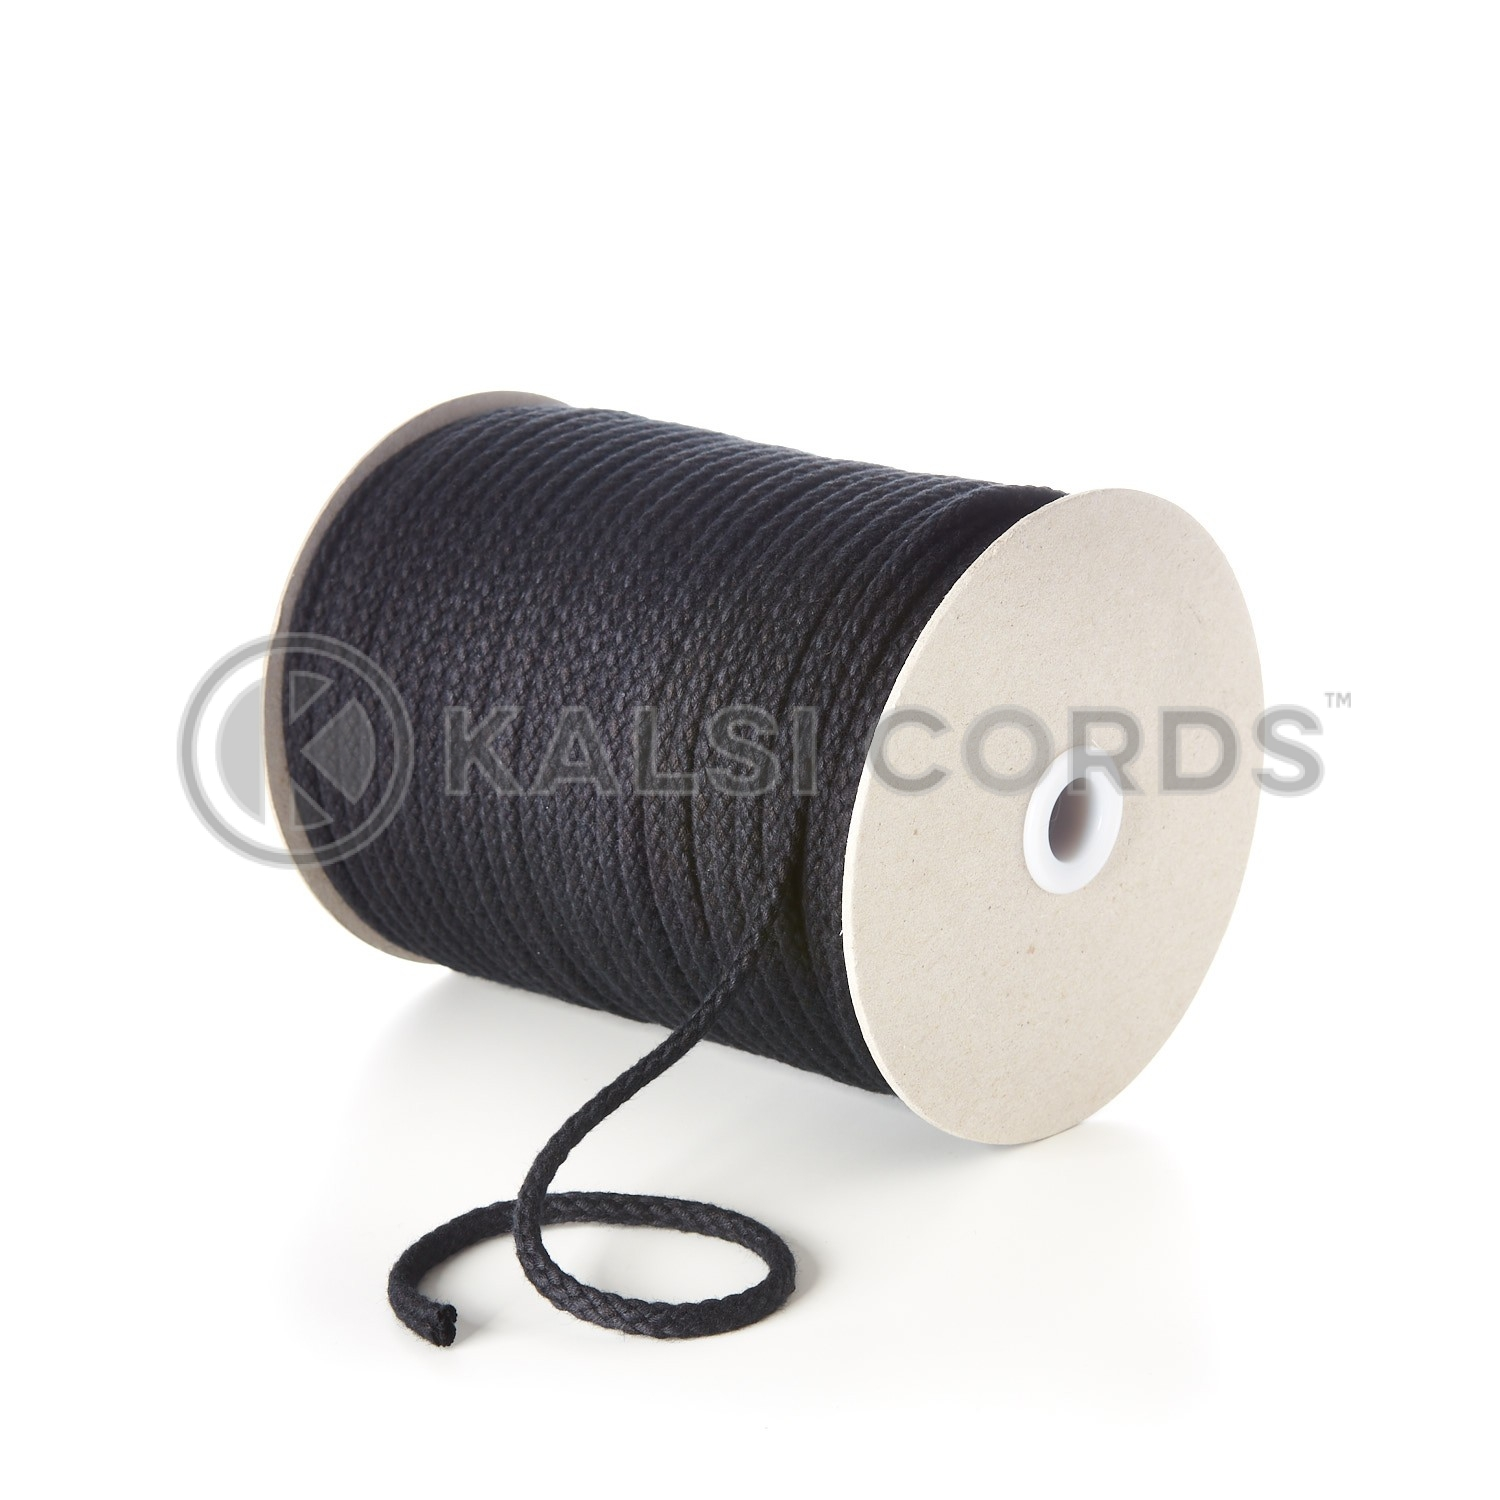 Black 6mm Round Cotton Cord Braided String Drawcord Drawstring C212 Kalsi Cords